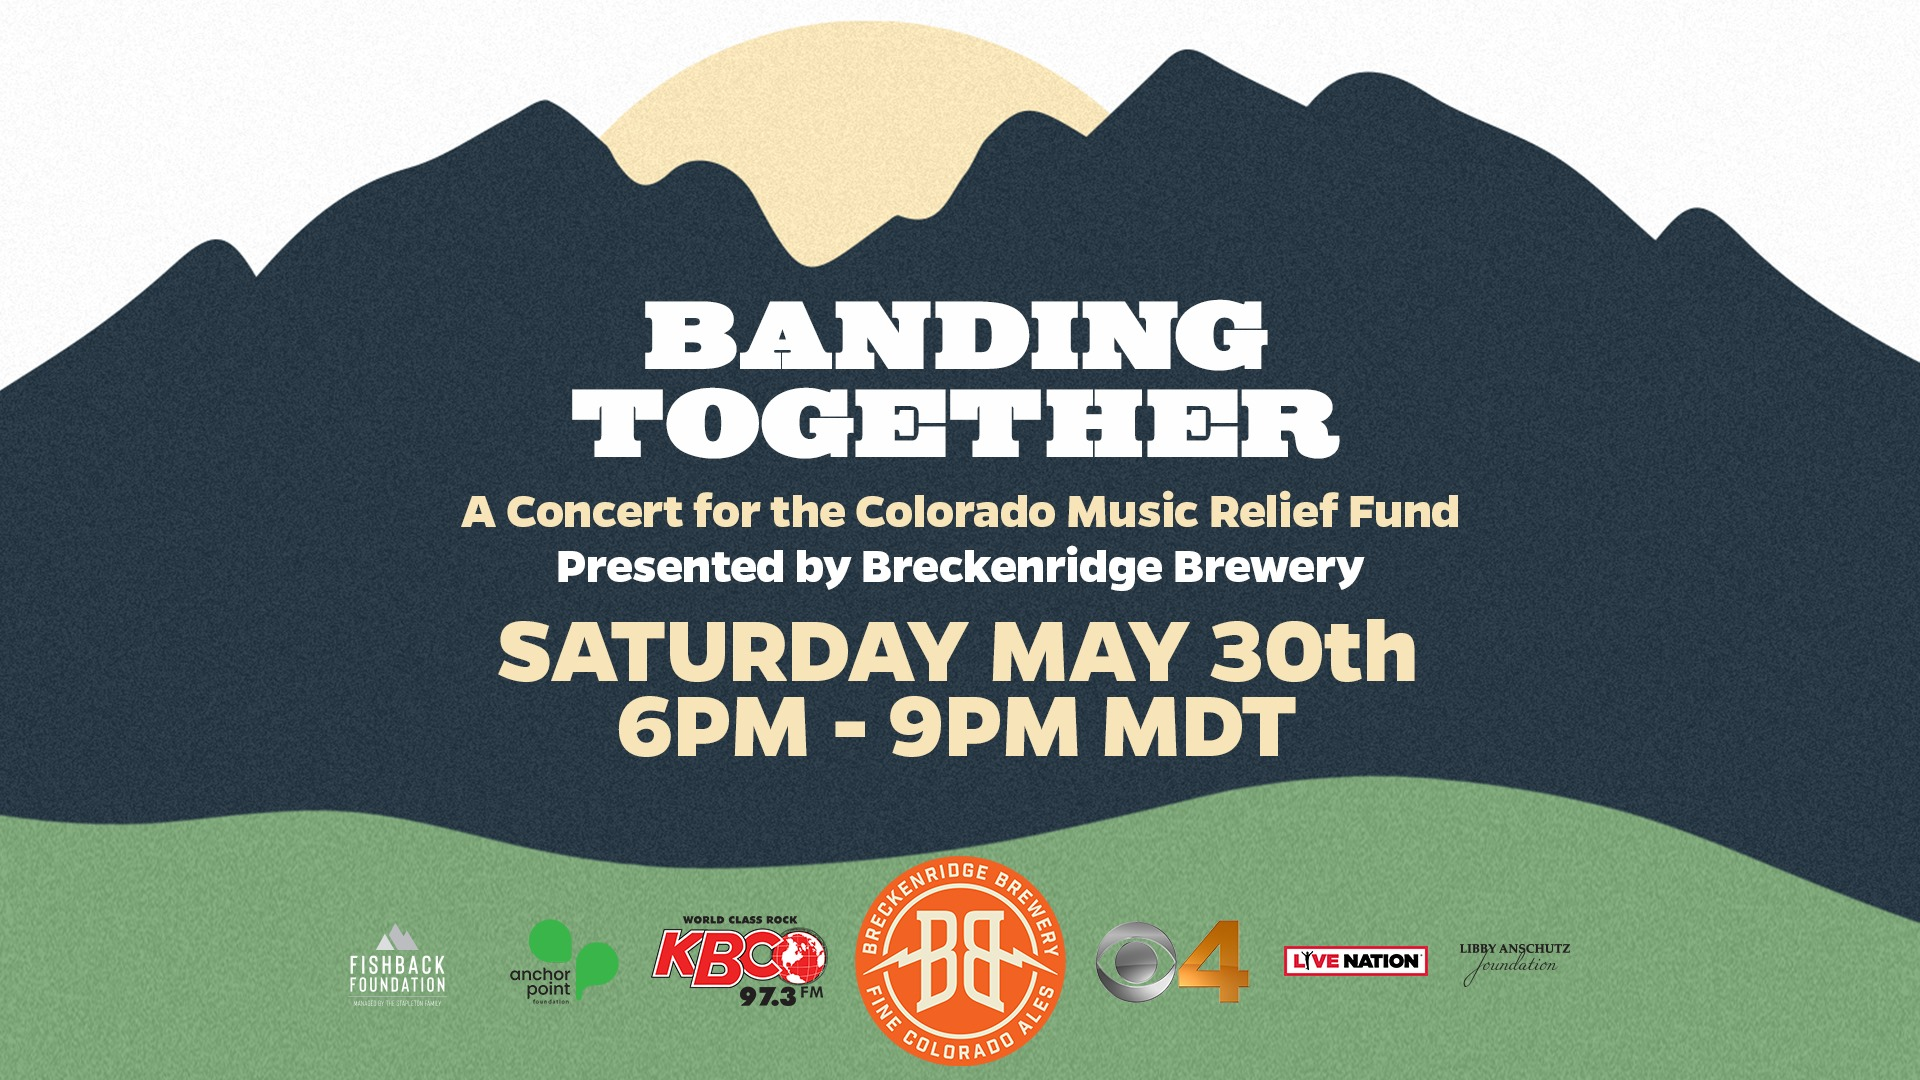 A Little Relief for the Colorado Music Community